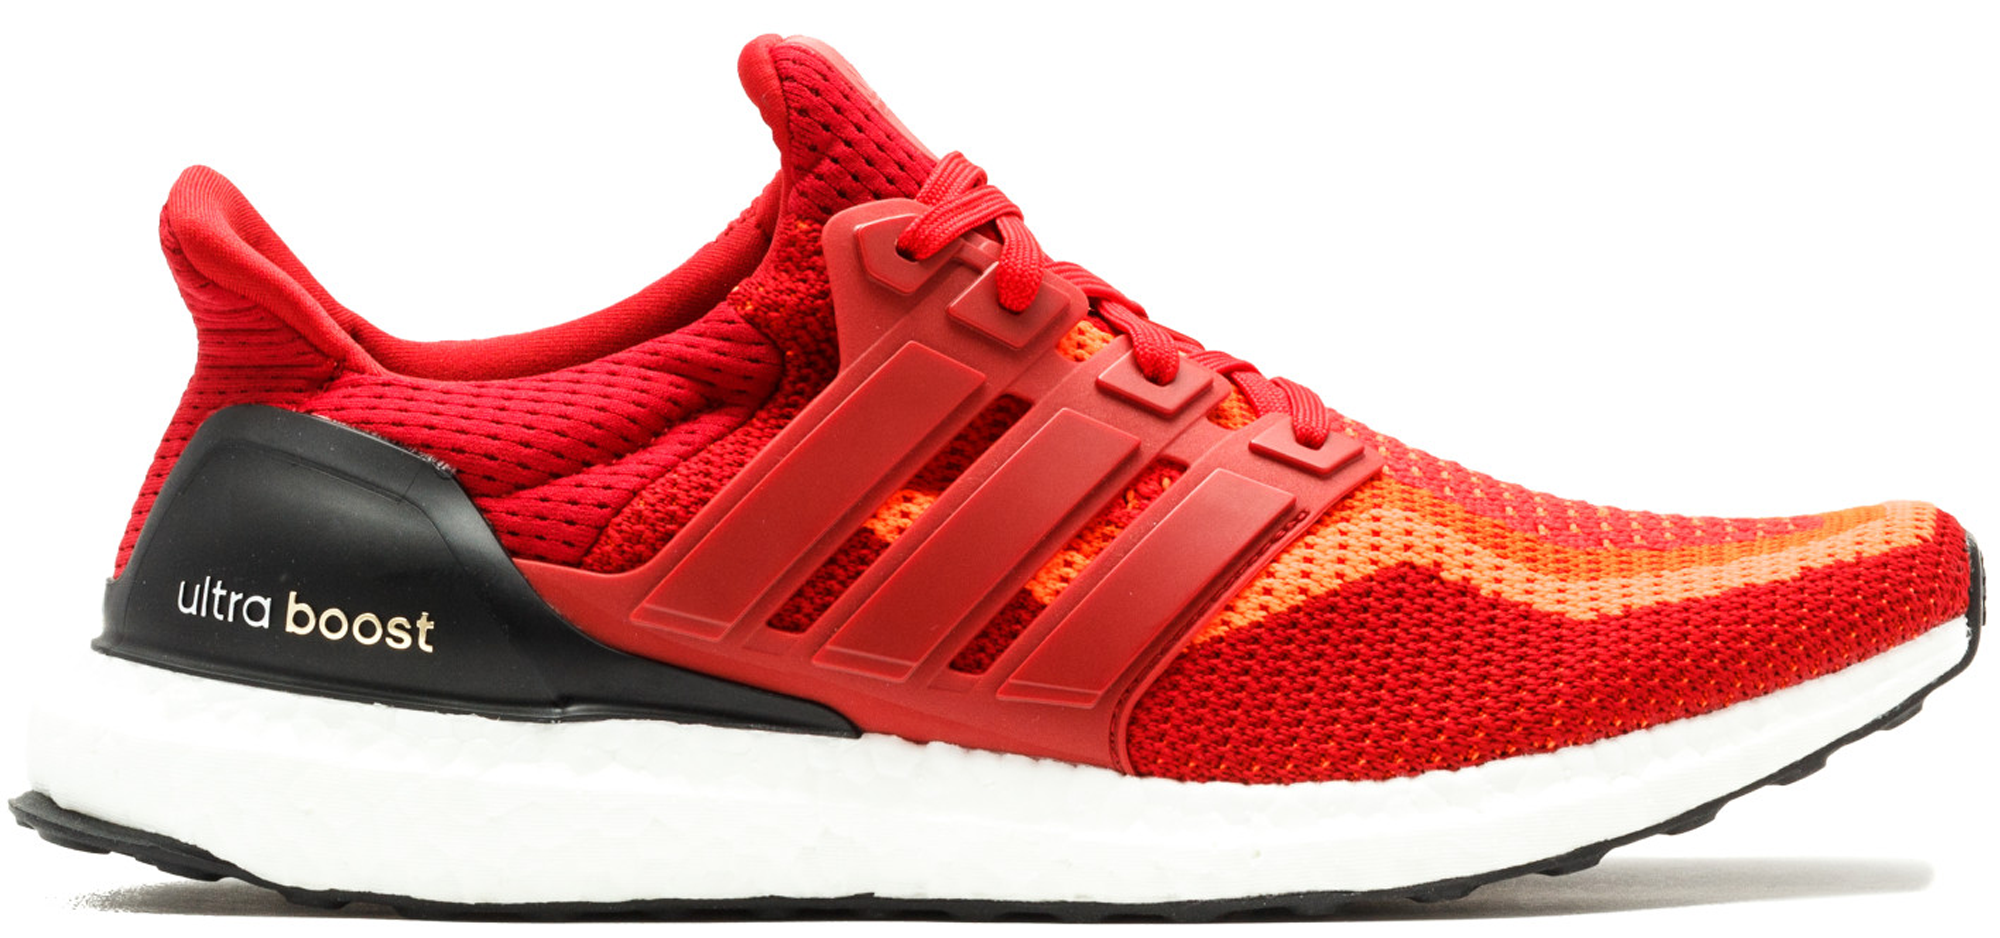 adidas Ultra Boost 2.0 Solar Red / Red Gradient